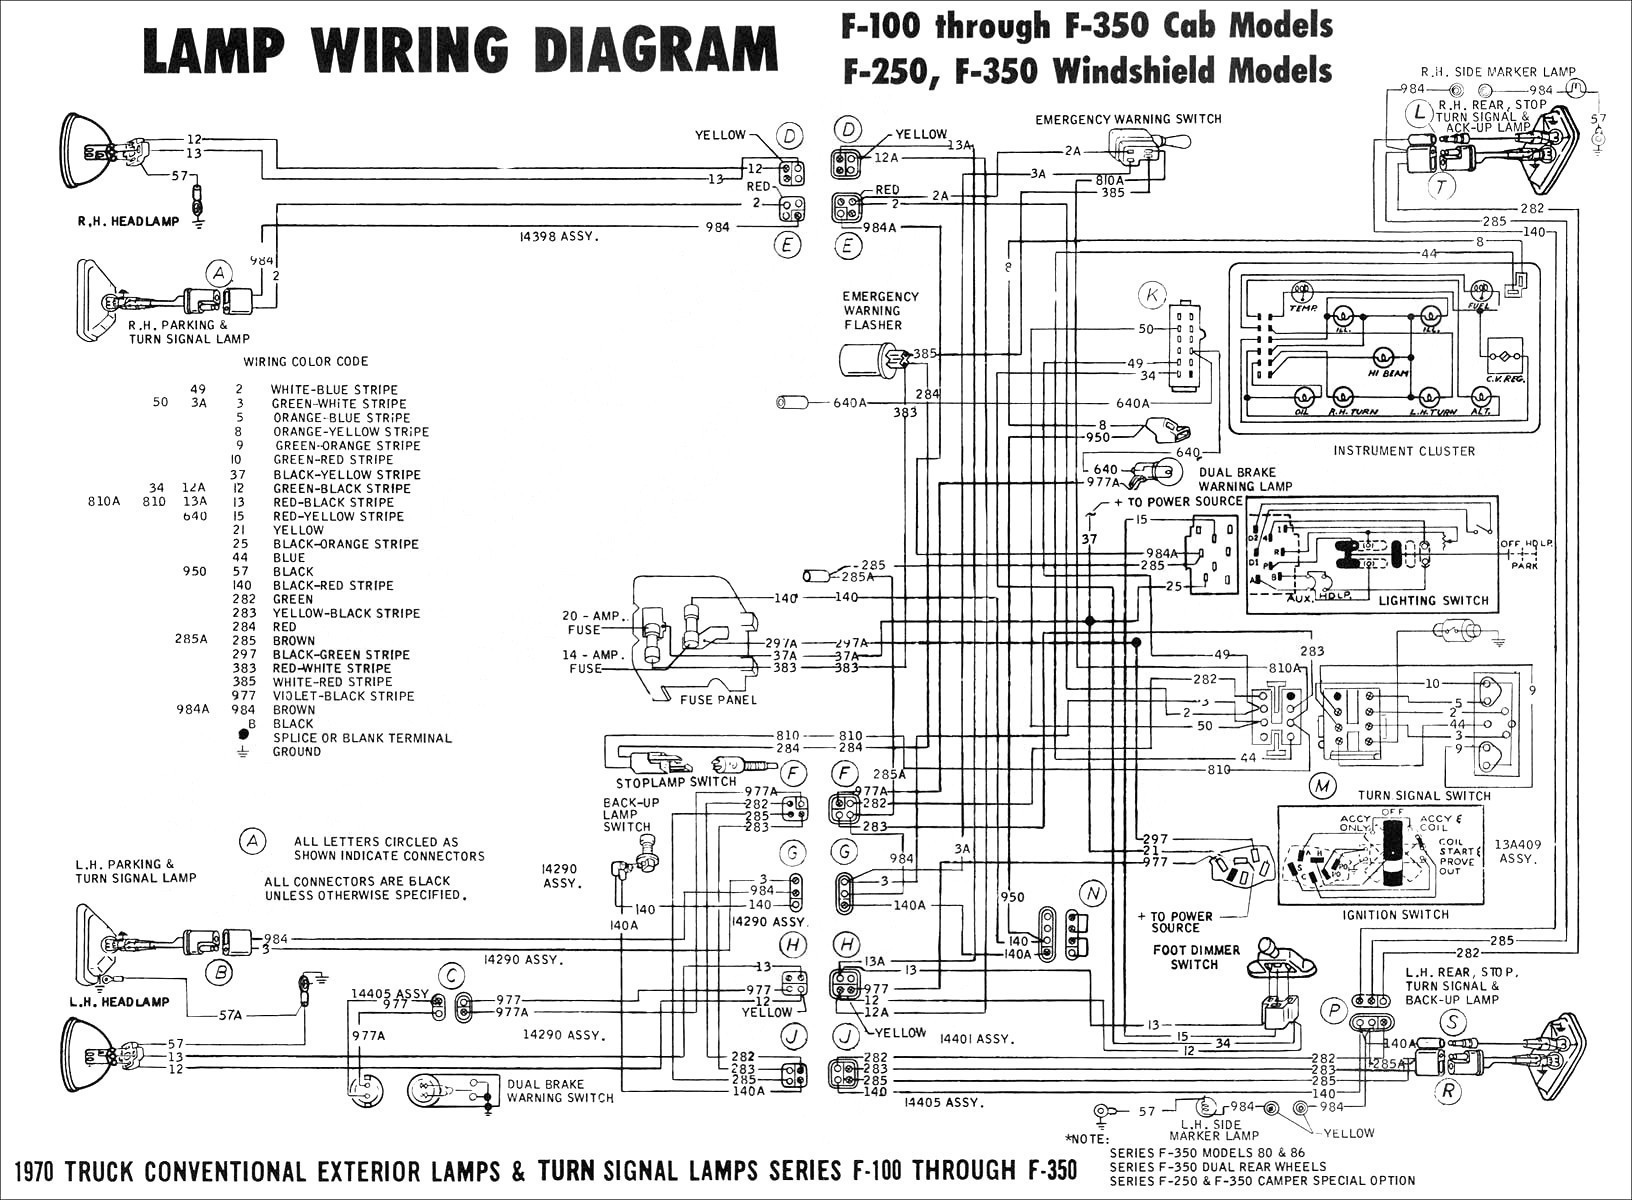 Wiring Diagram PDF: 2002 Honda Rebel Wiring Diagram